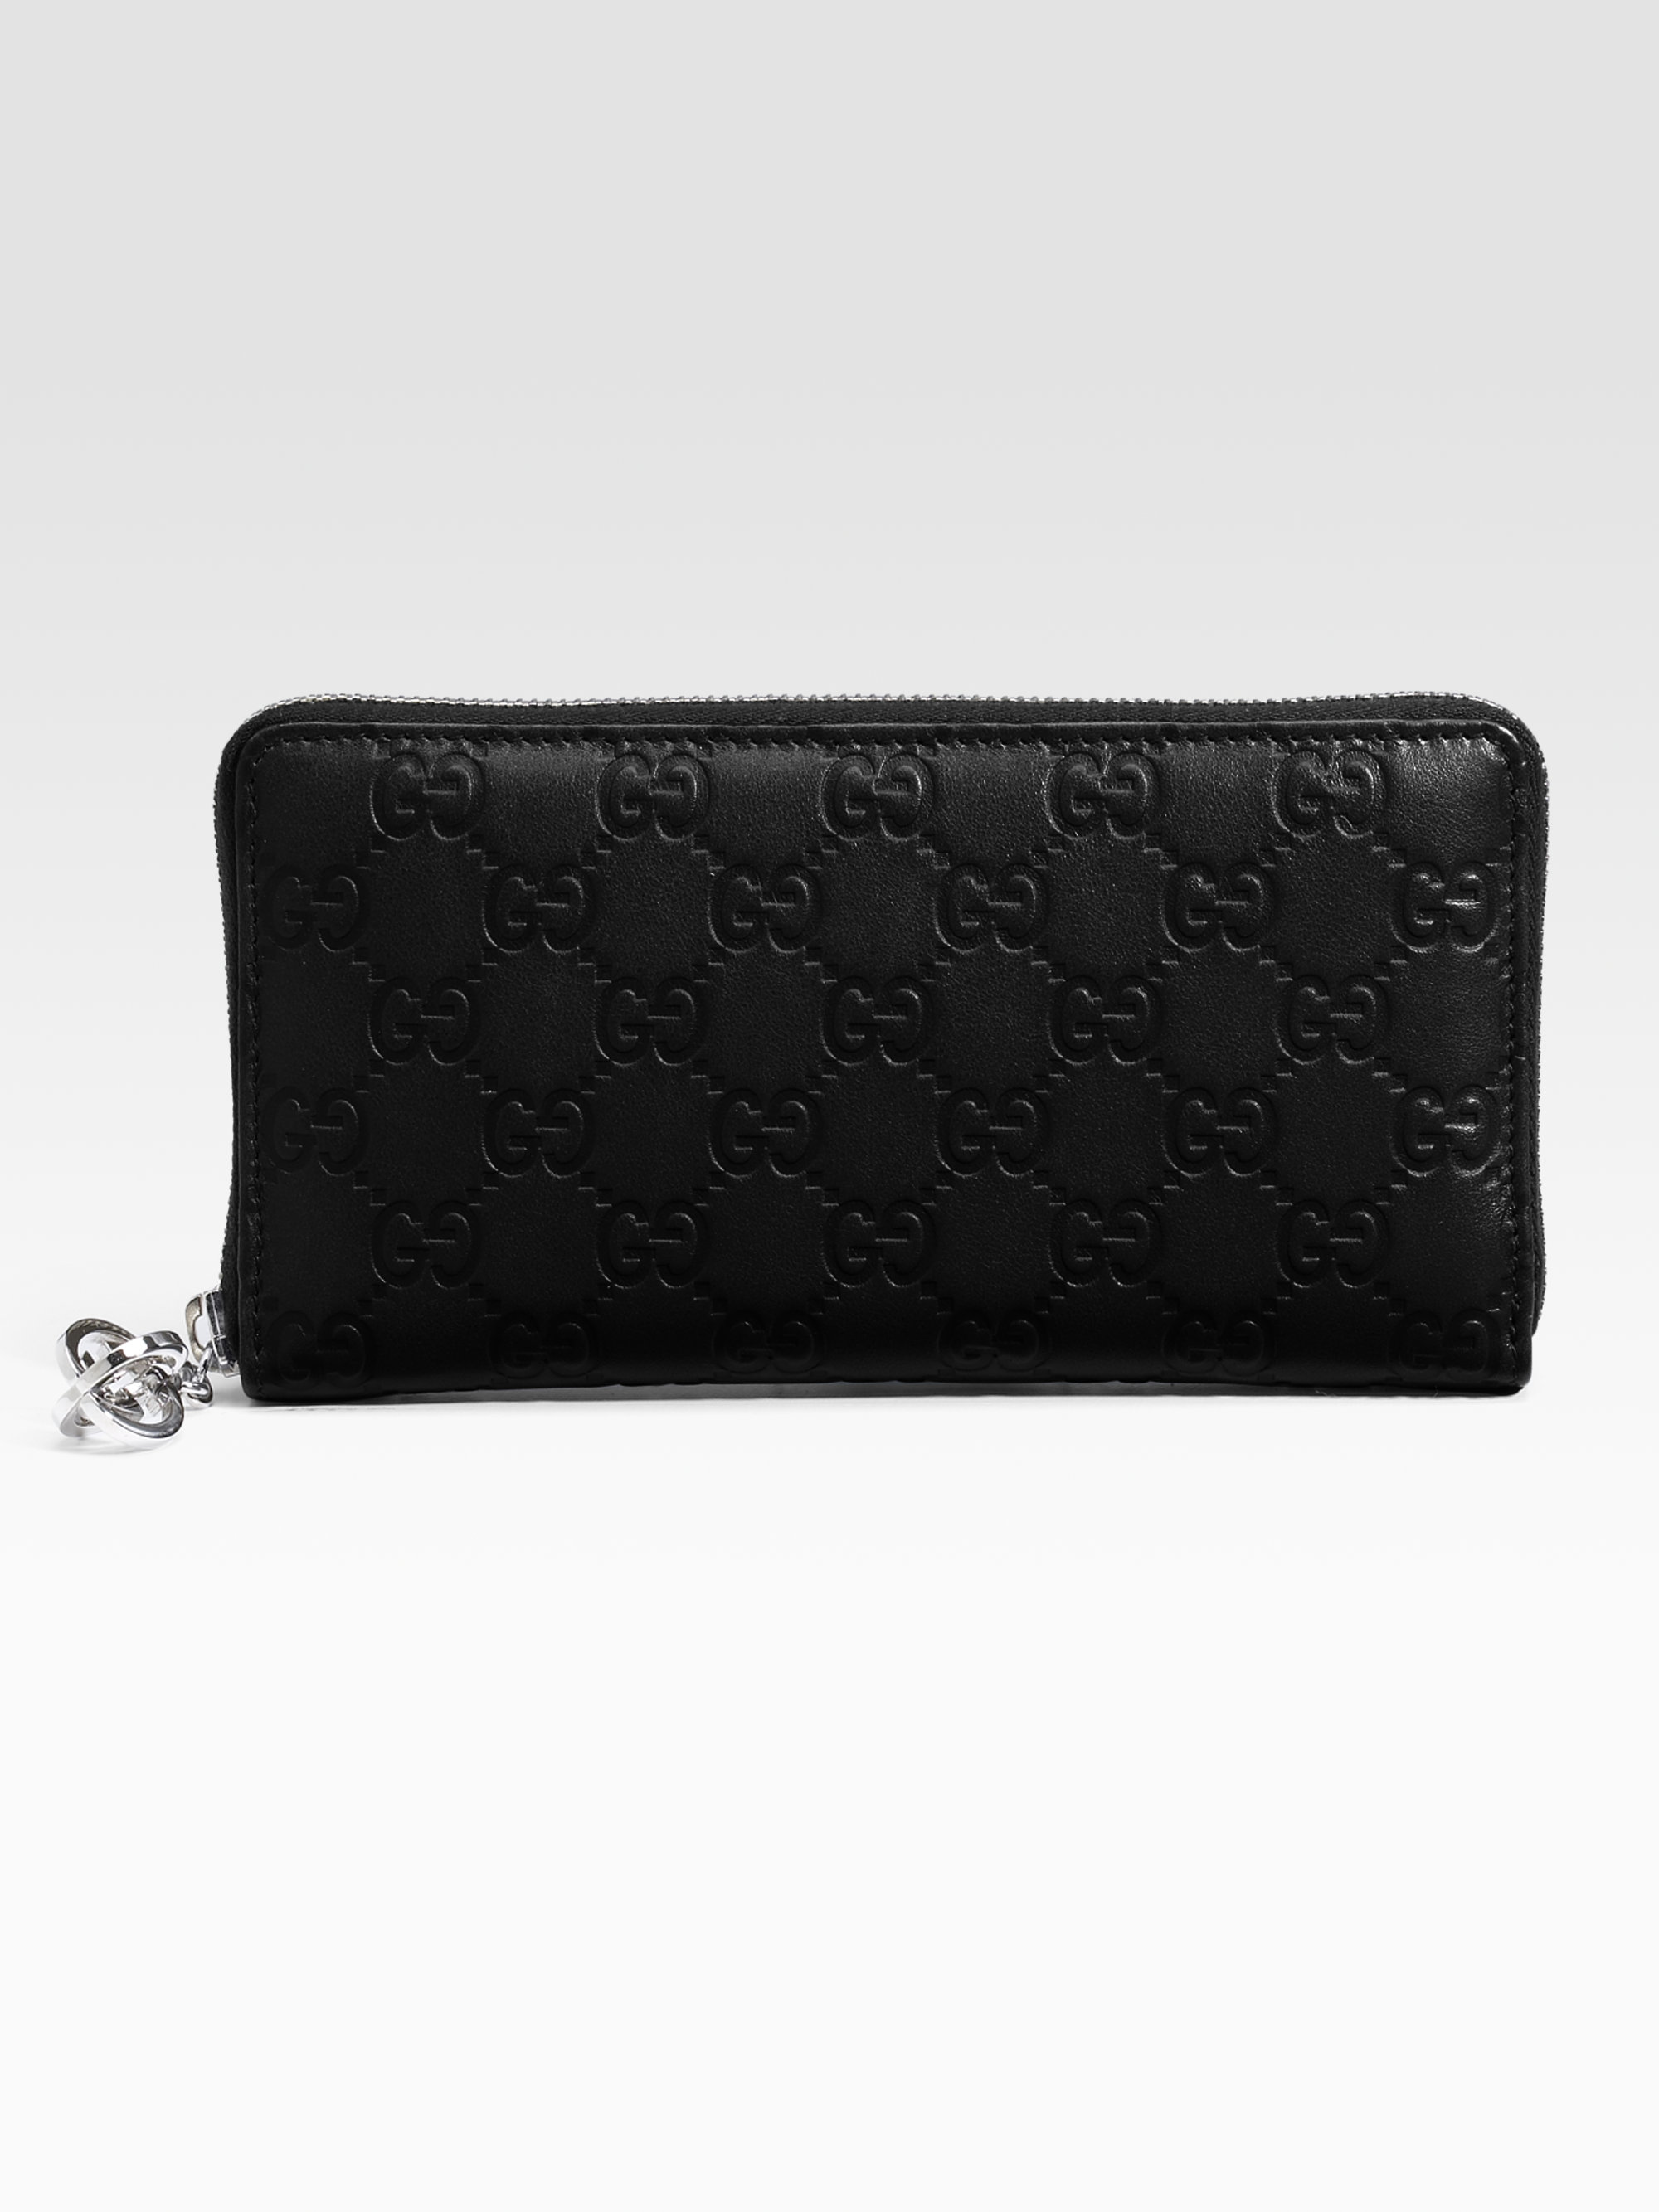 b321e3337061e3 Gucci Gg Twins Leather Zip Around Wallet in Black - Lyst